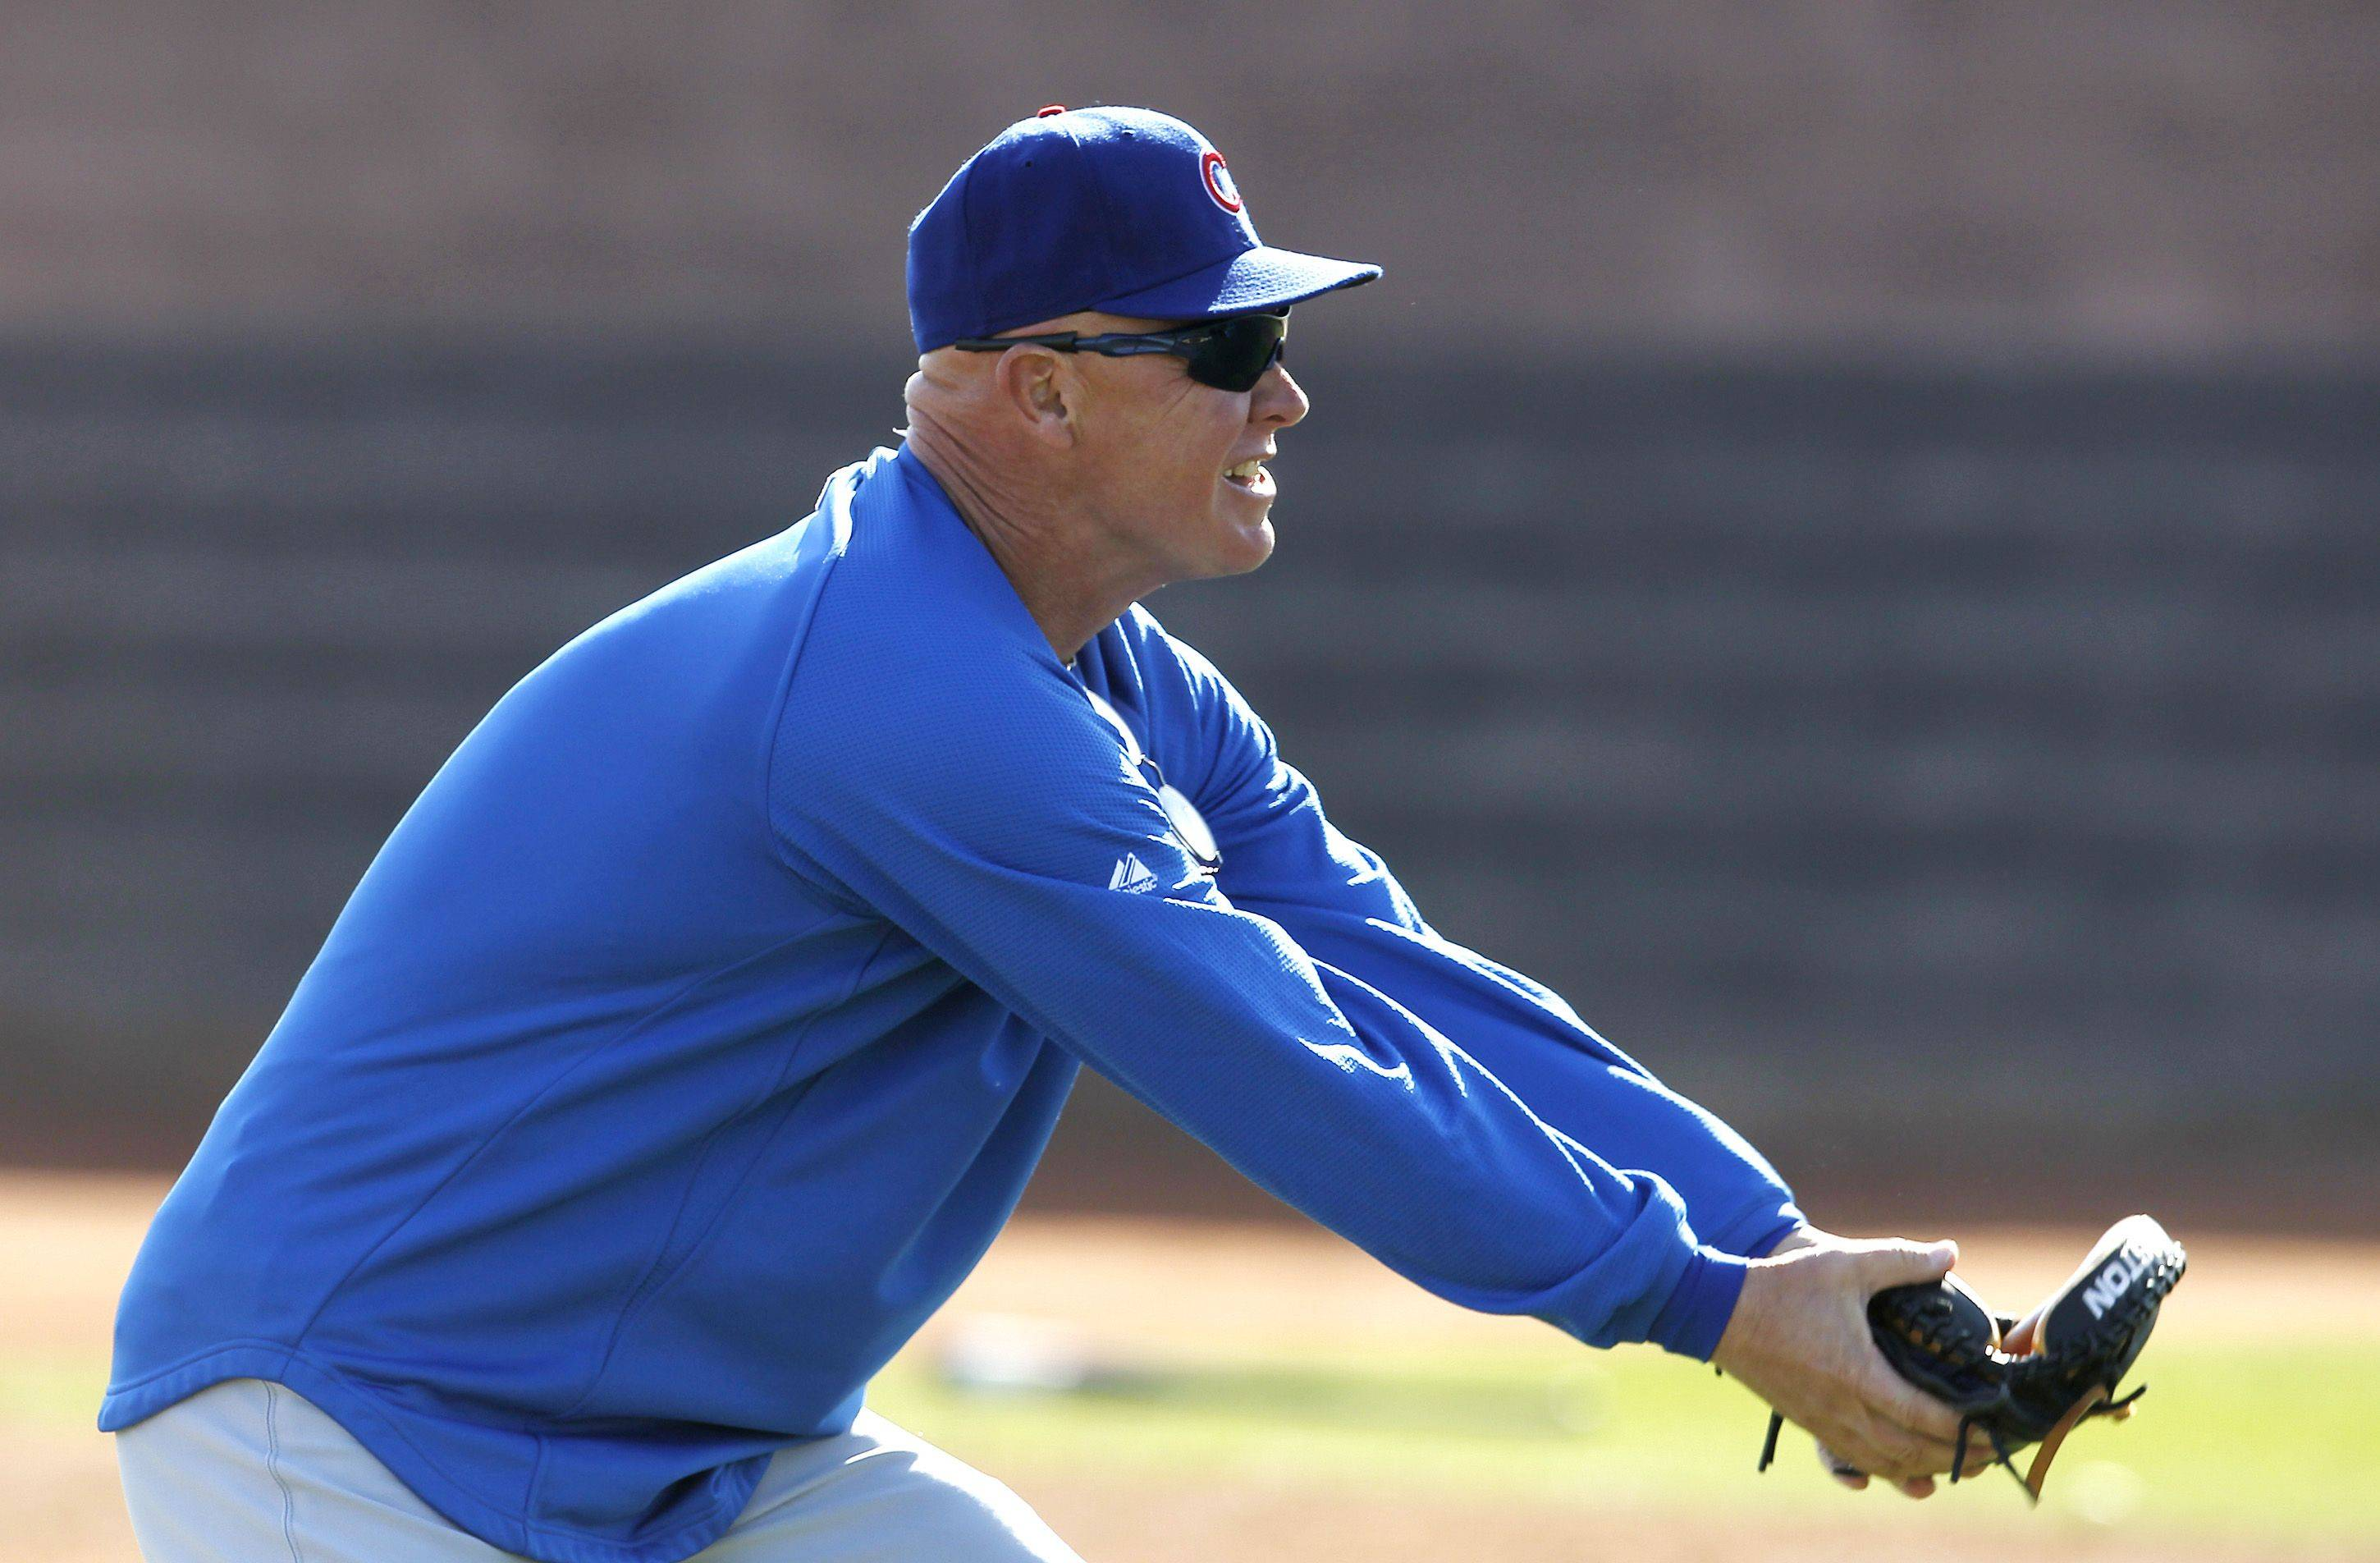 With 17 years in the minor leagues as a coach, Cubs manager Mike Quade takes a hands-on approach with his club.